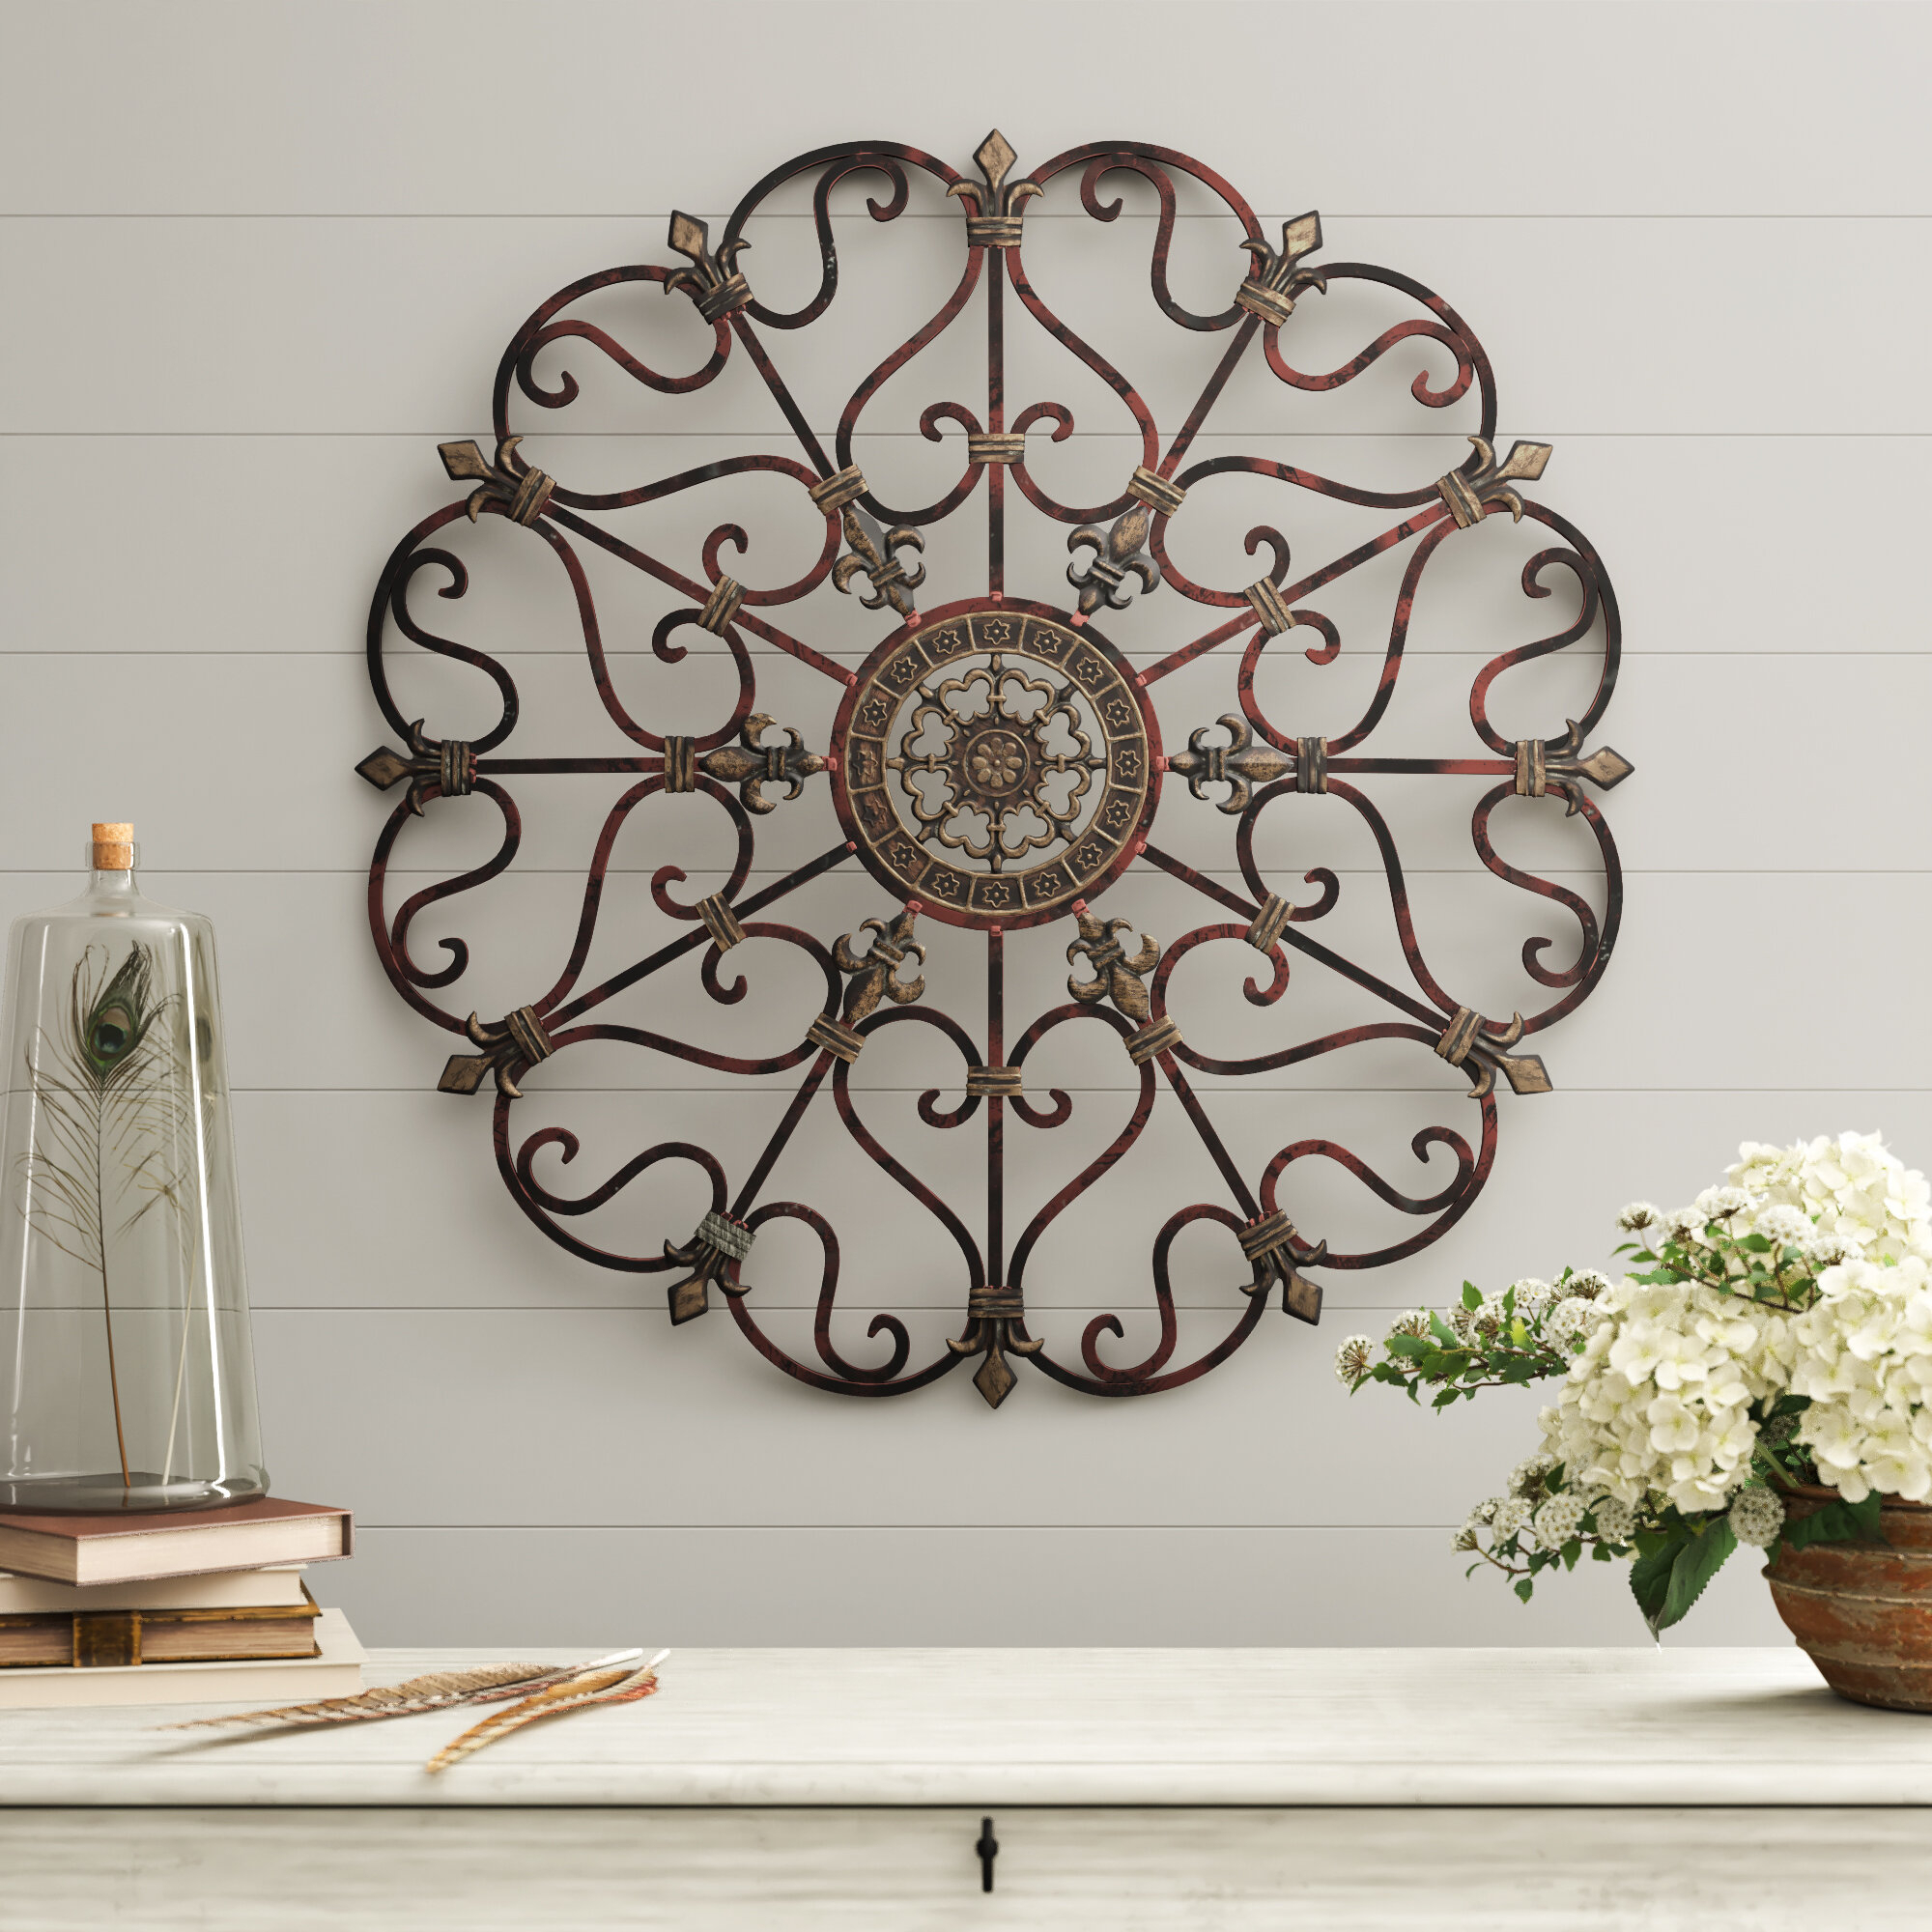 Farmhouse & Rustic Wall Decor | Birch Lane With Regard To Ornamental Wood And Metal Scroll Wall Decor (View 12 of 30)